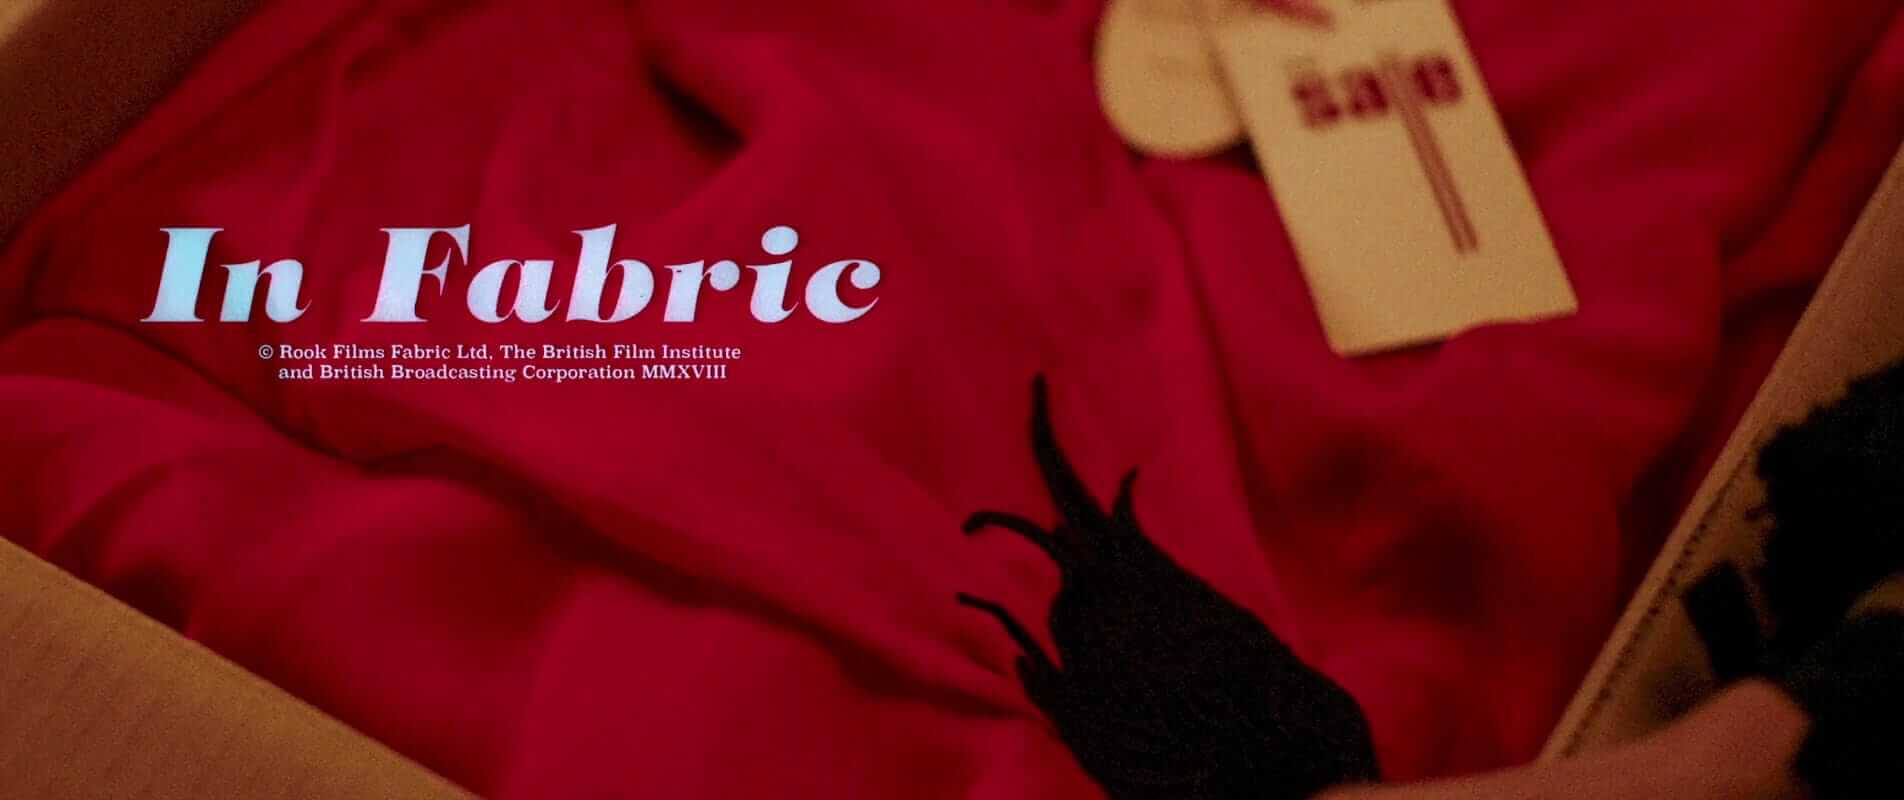 In-Fabric-Movie-peter-strickland-2018